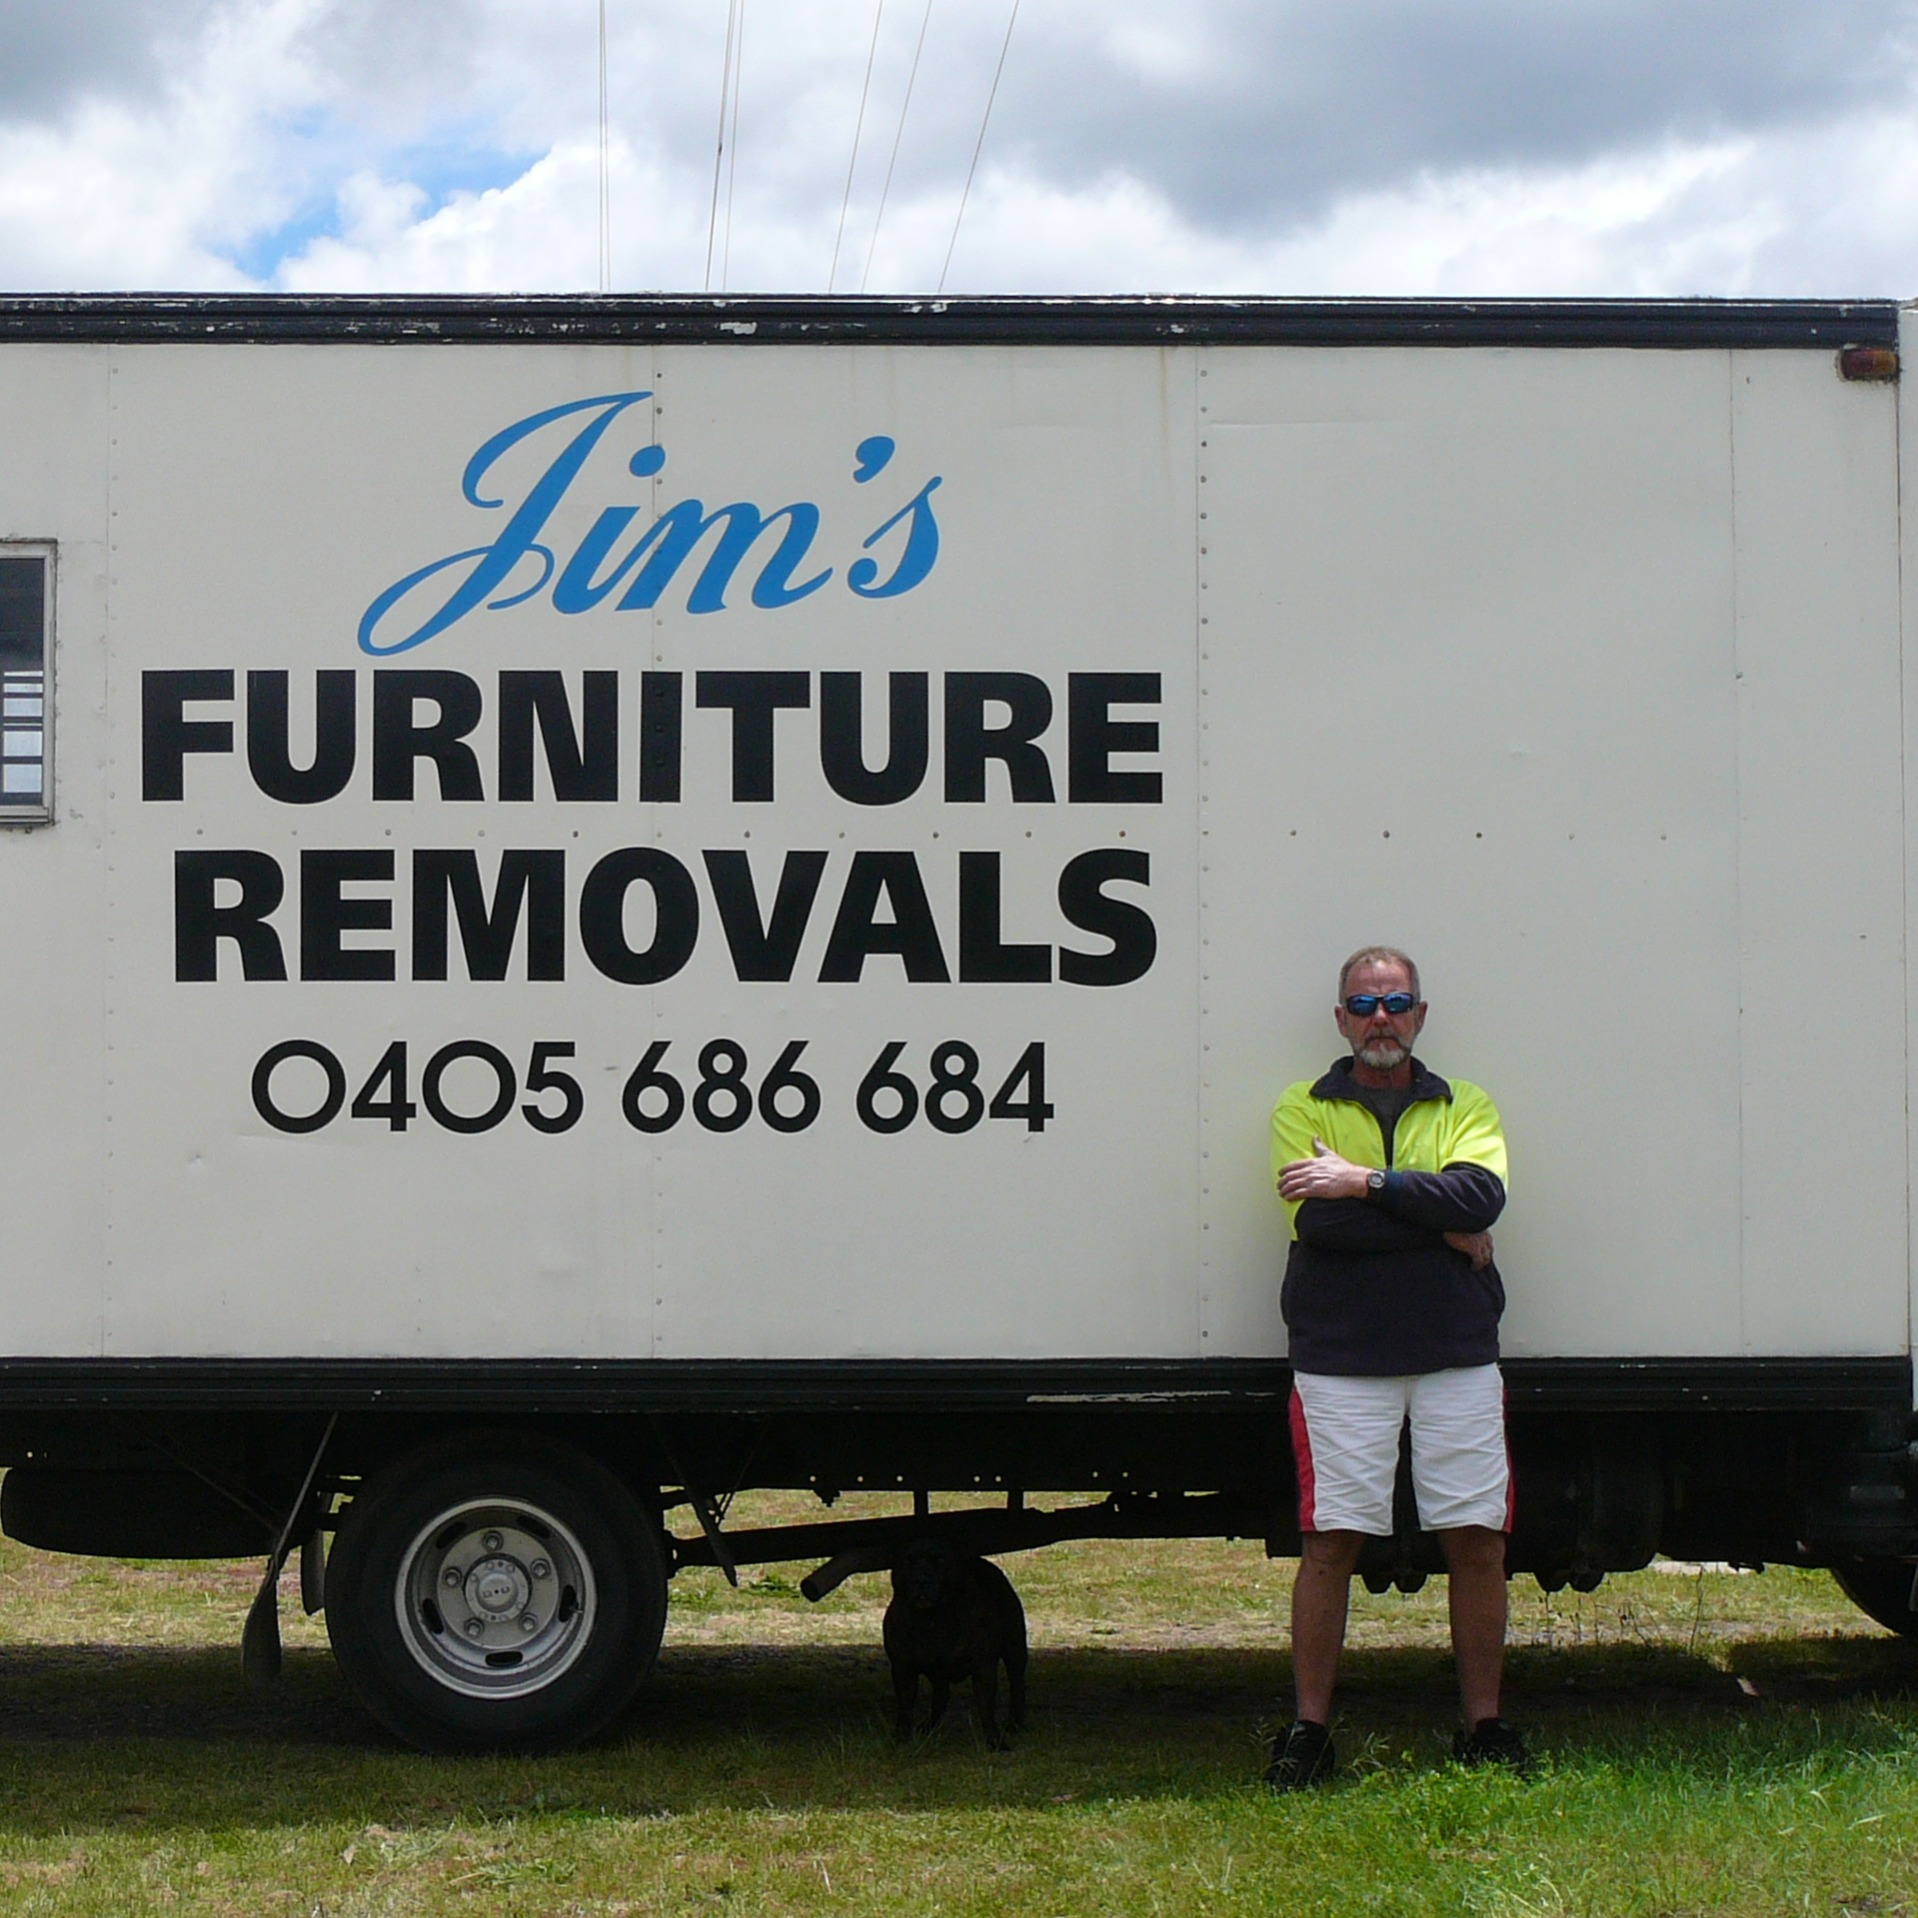 JIMS FURNITURE REMOVALS